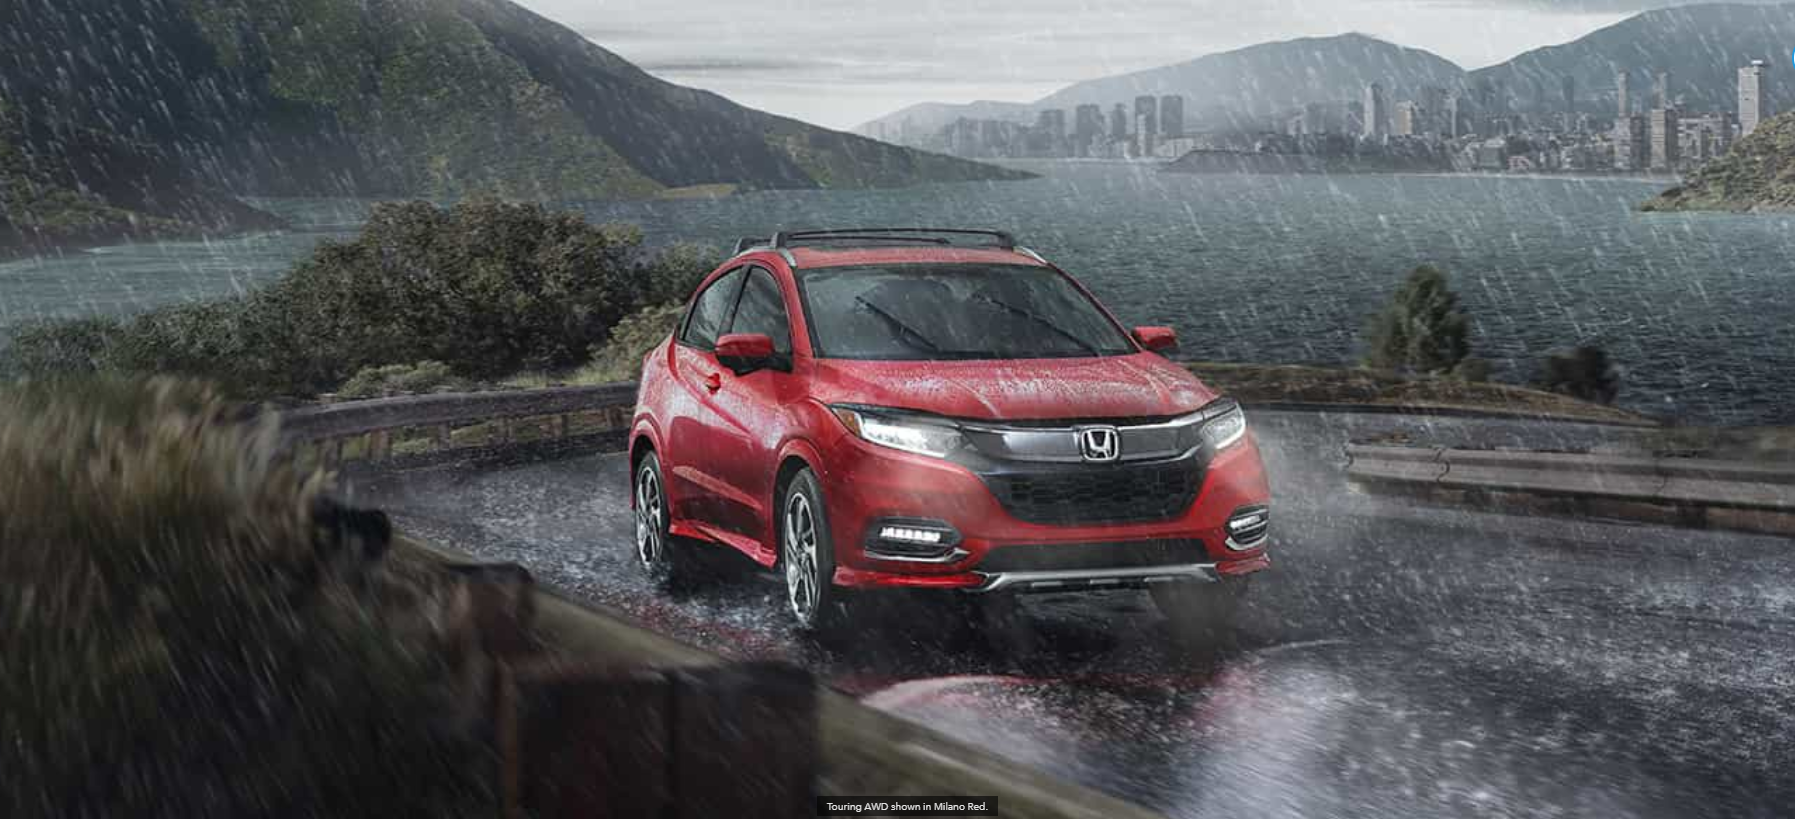 Castle Honda offers many specials, incentives, and discounts towards Honda vehicles and services near Addison, IL